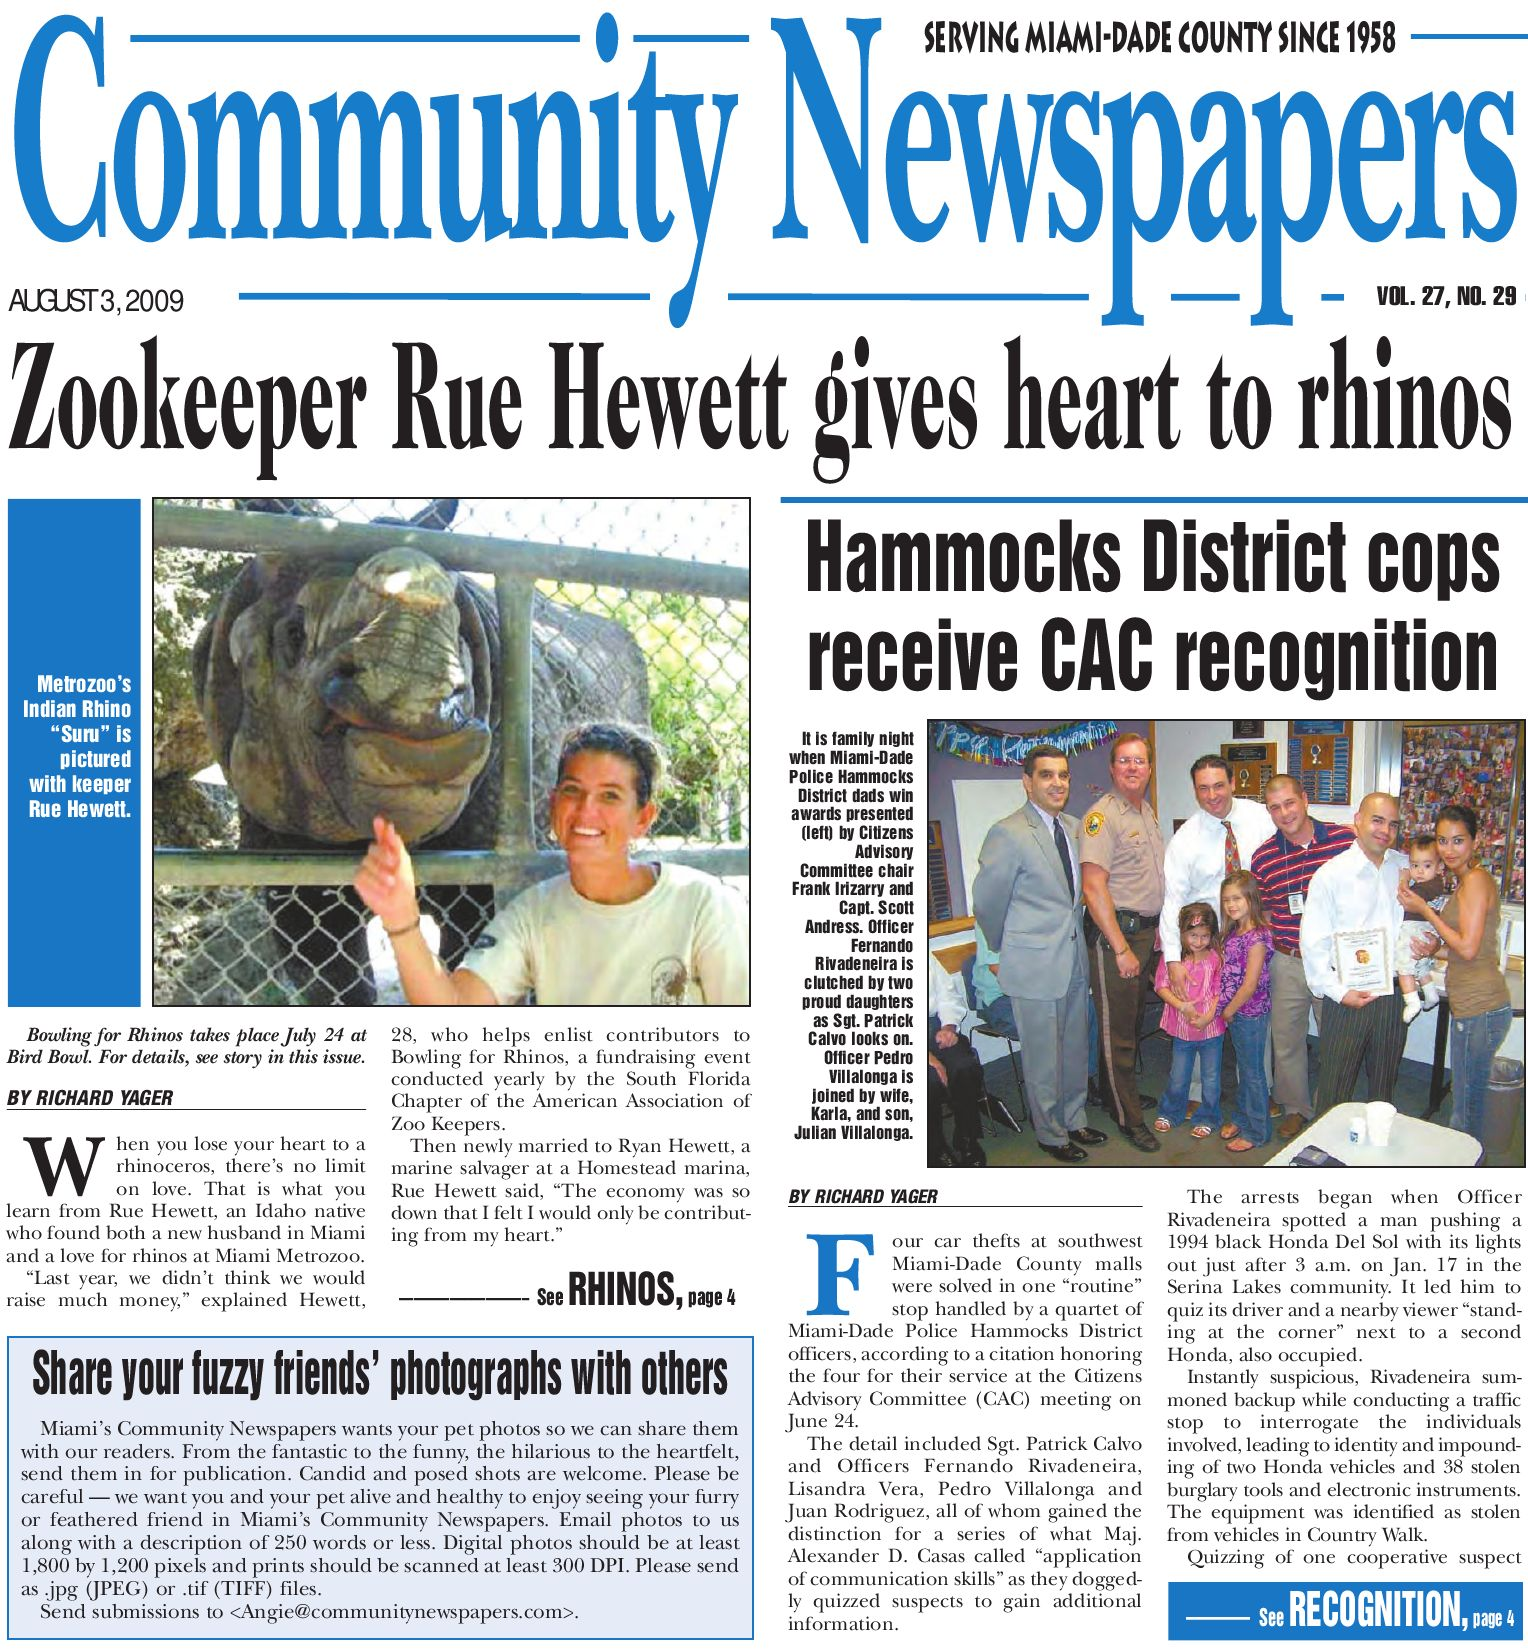 174th district court case 1430835 - Community Newspapers Legal August 3 2009 Edition Local Community News Miami Florida By Community Newspapers Issuu